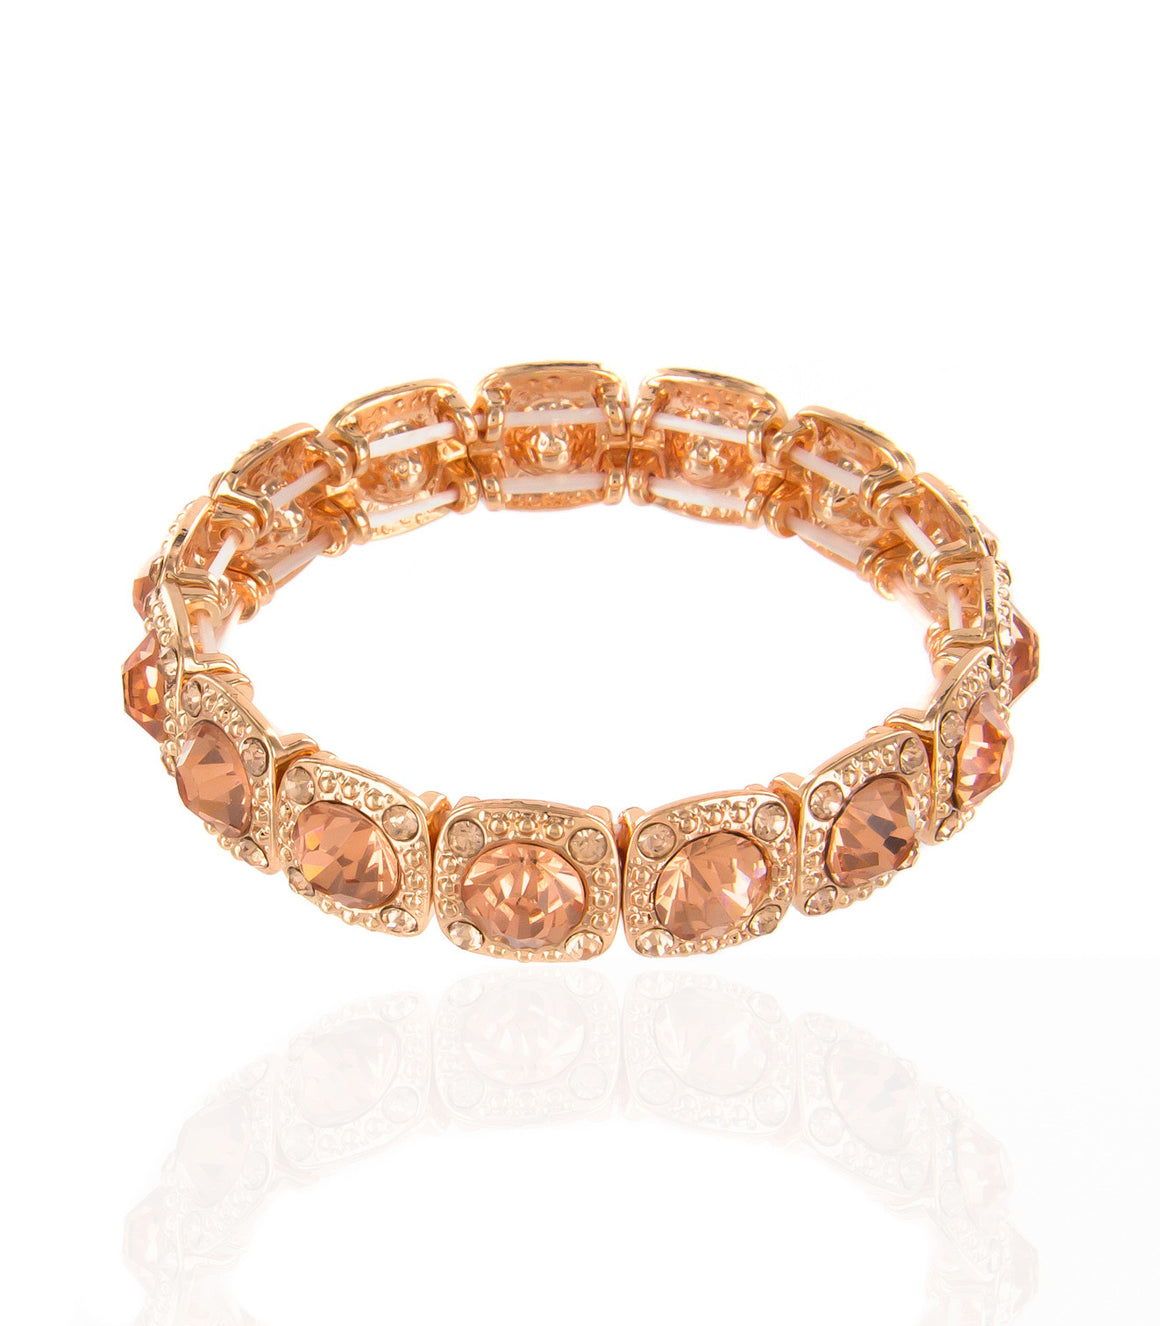 Square rhinestone Stretch Bracelet.